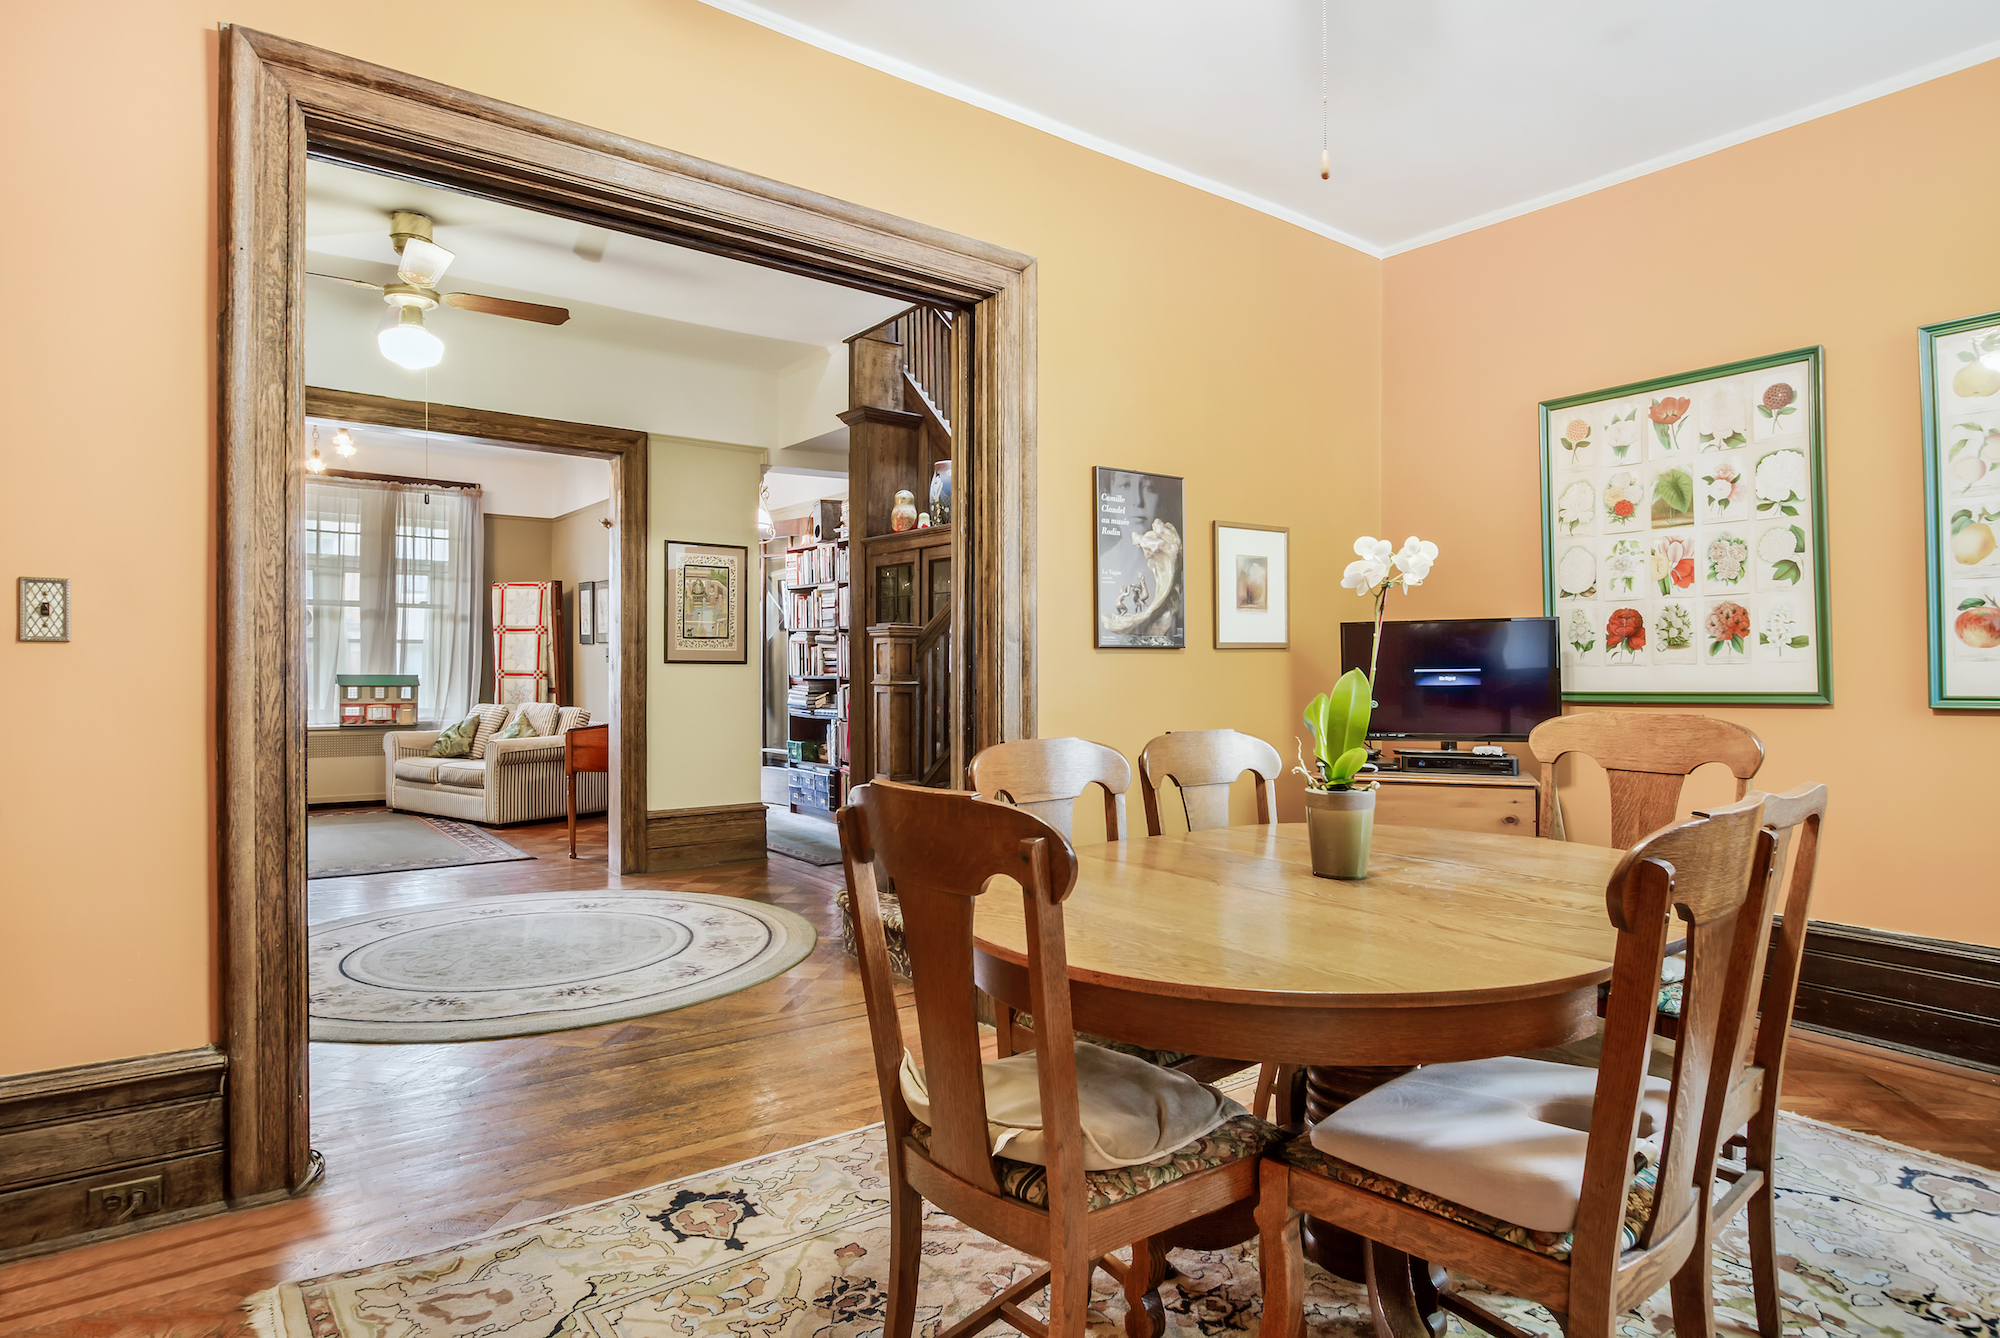 207 Windsor Place , Windsor Terrace, Brooklyn Townhouse, Craftsman style, townhouse, historic homes, cool listings